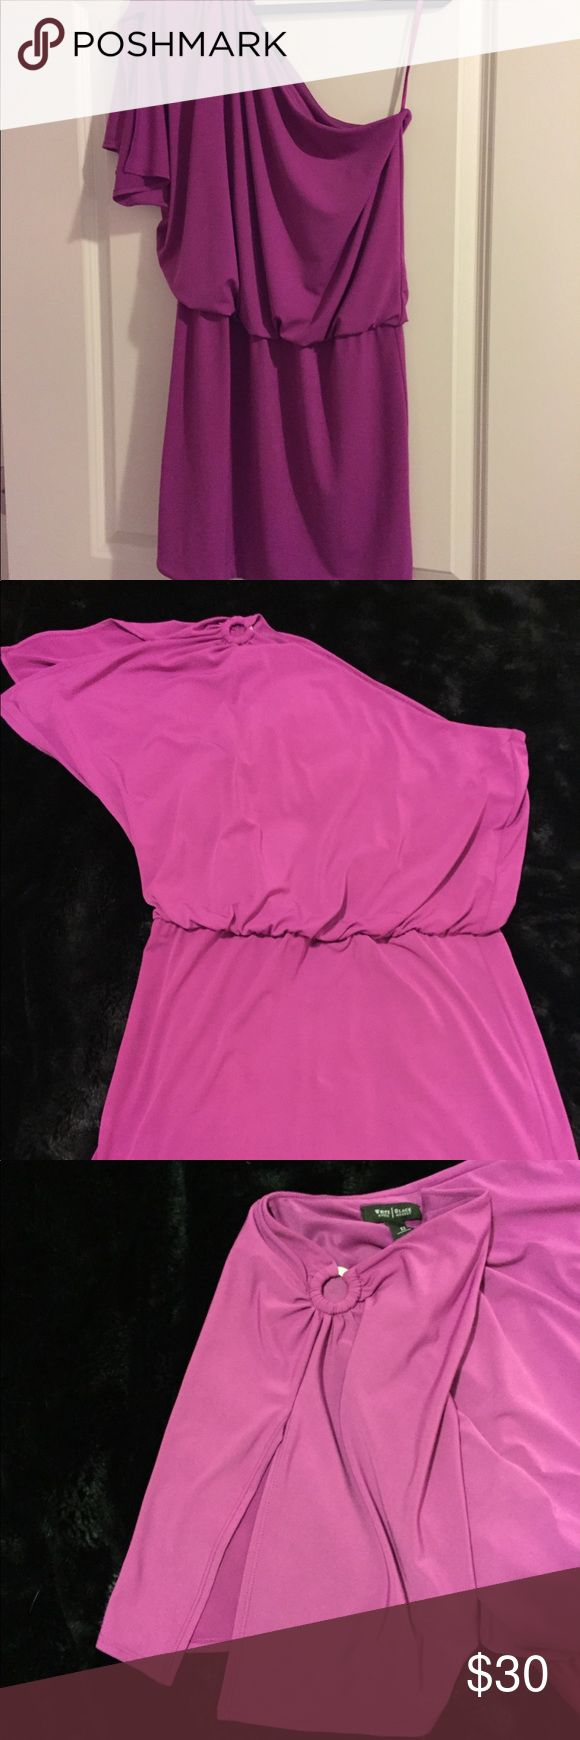 White House Black Market one shoulder dress 12 Never worn just tried on several times.  One shoulder magenta dress size 12 from White House Black Market. Side with shoulder has split sleeve with silver hoop hardware. White House Black Market Dresses One Shoulder